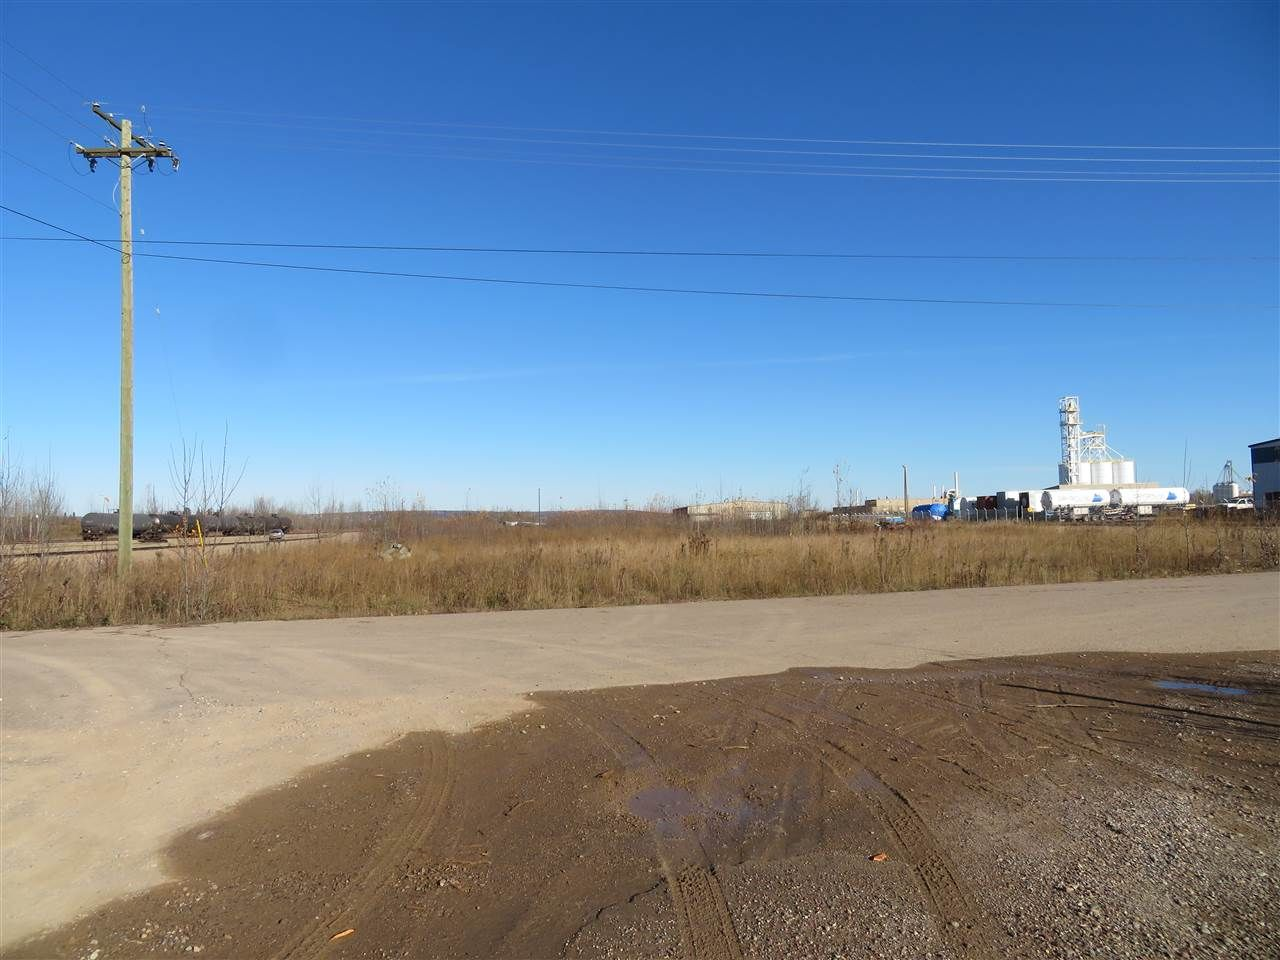 Main Photo: 20 DAWSON'S Drive in Fort Nelson: Fort Nelson - Rural Industrial for sale (Fort Nelson (Zone 64))  : MLS®# C8034680